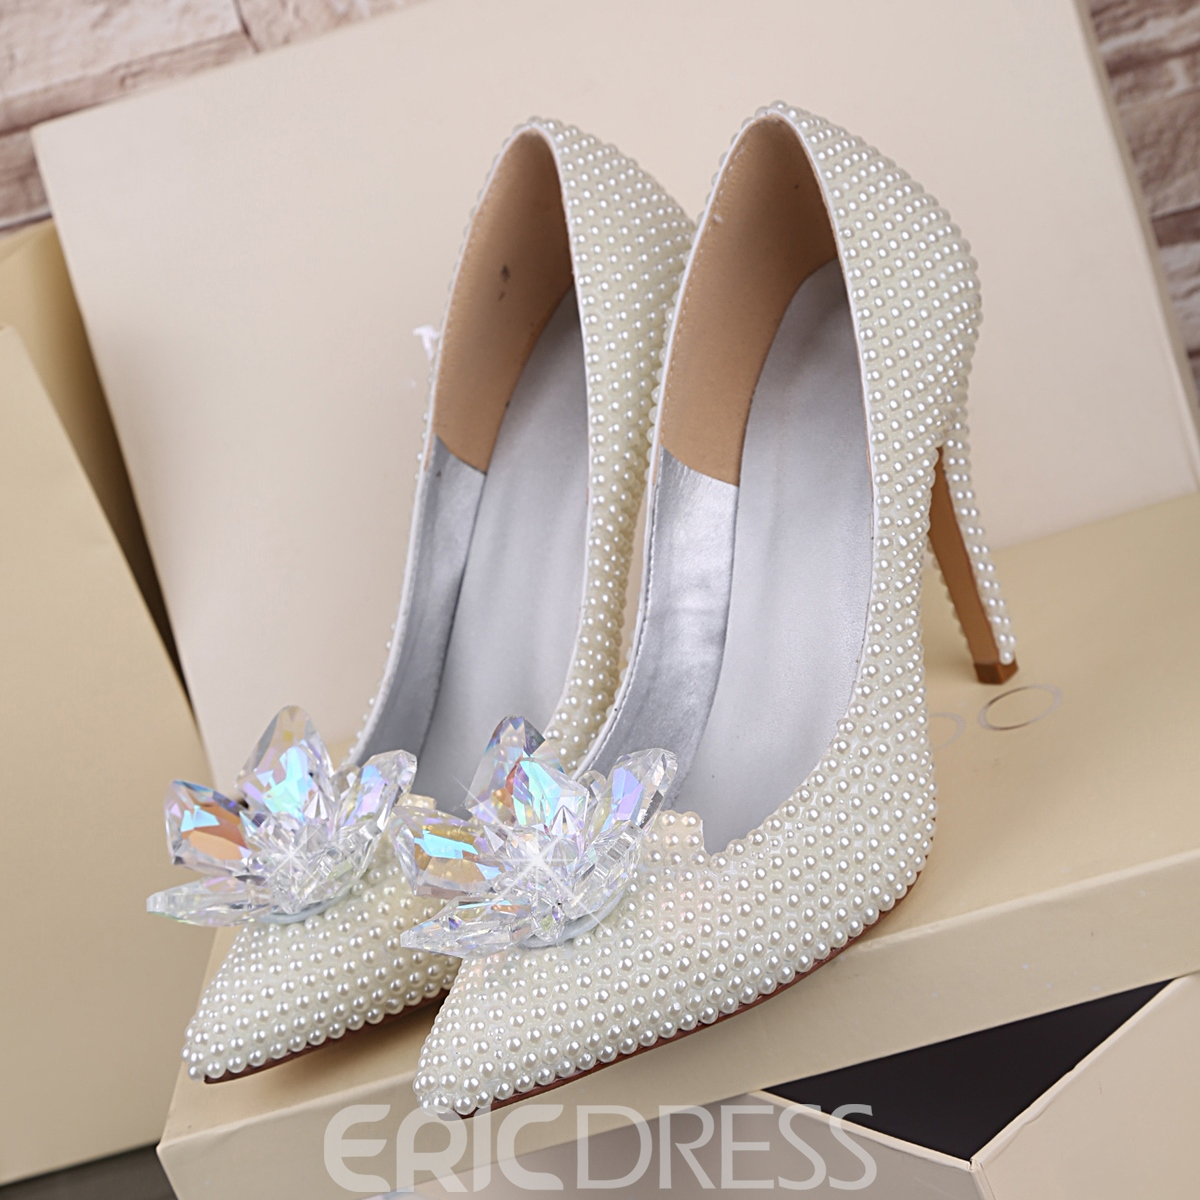 Ericdress White Pearl Wedding Shoes 11574058 - Ericdress.com 66b76ca0c7